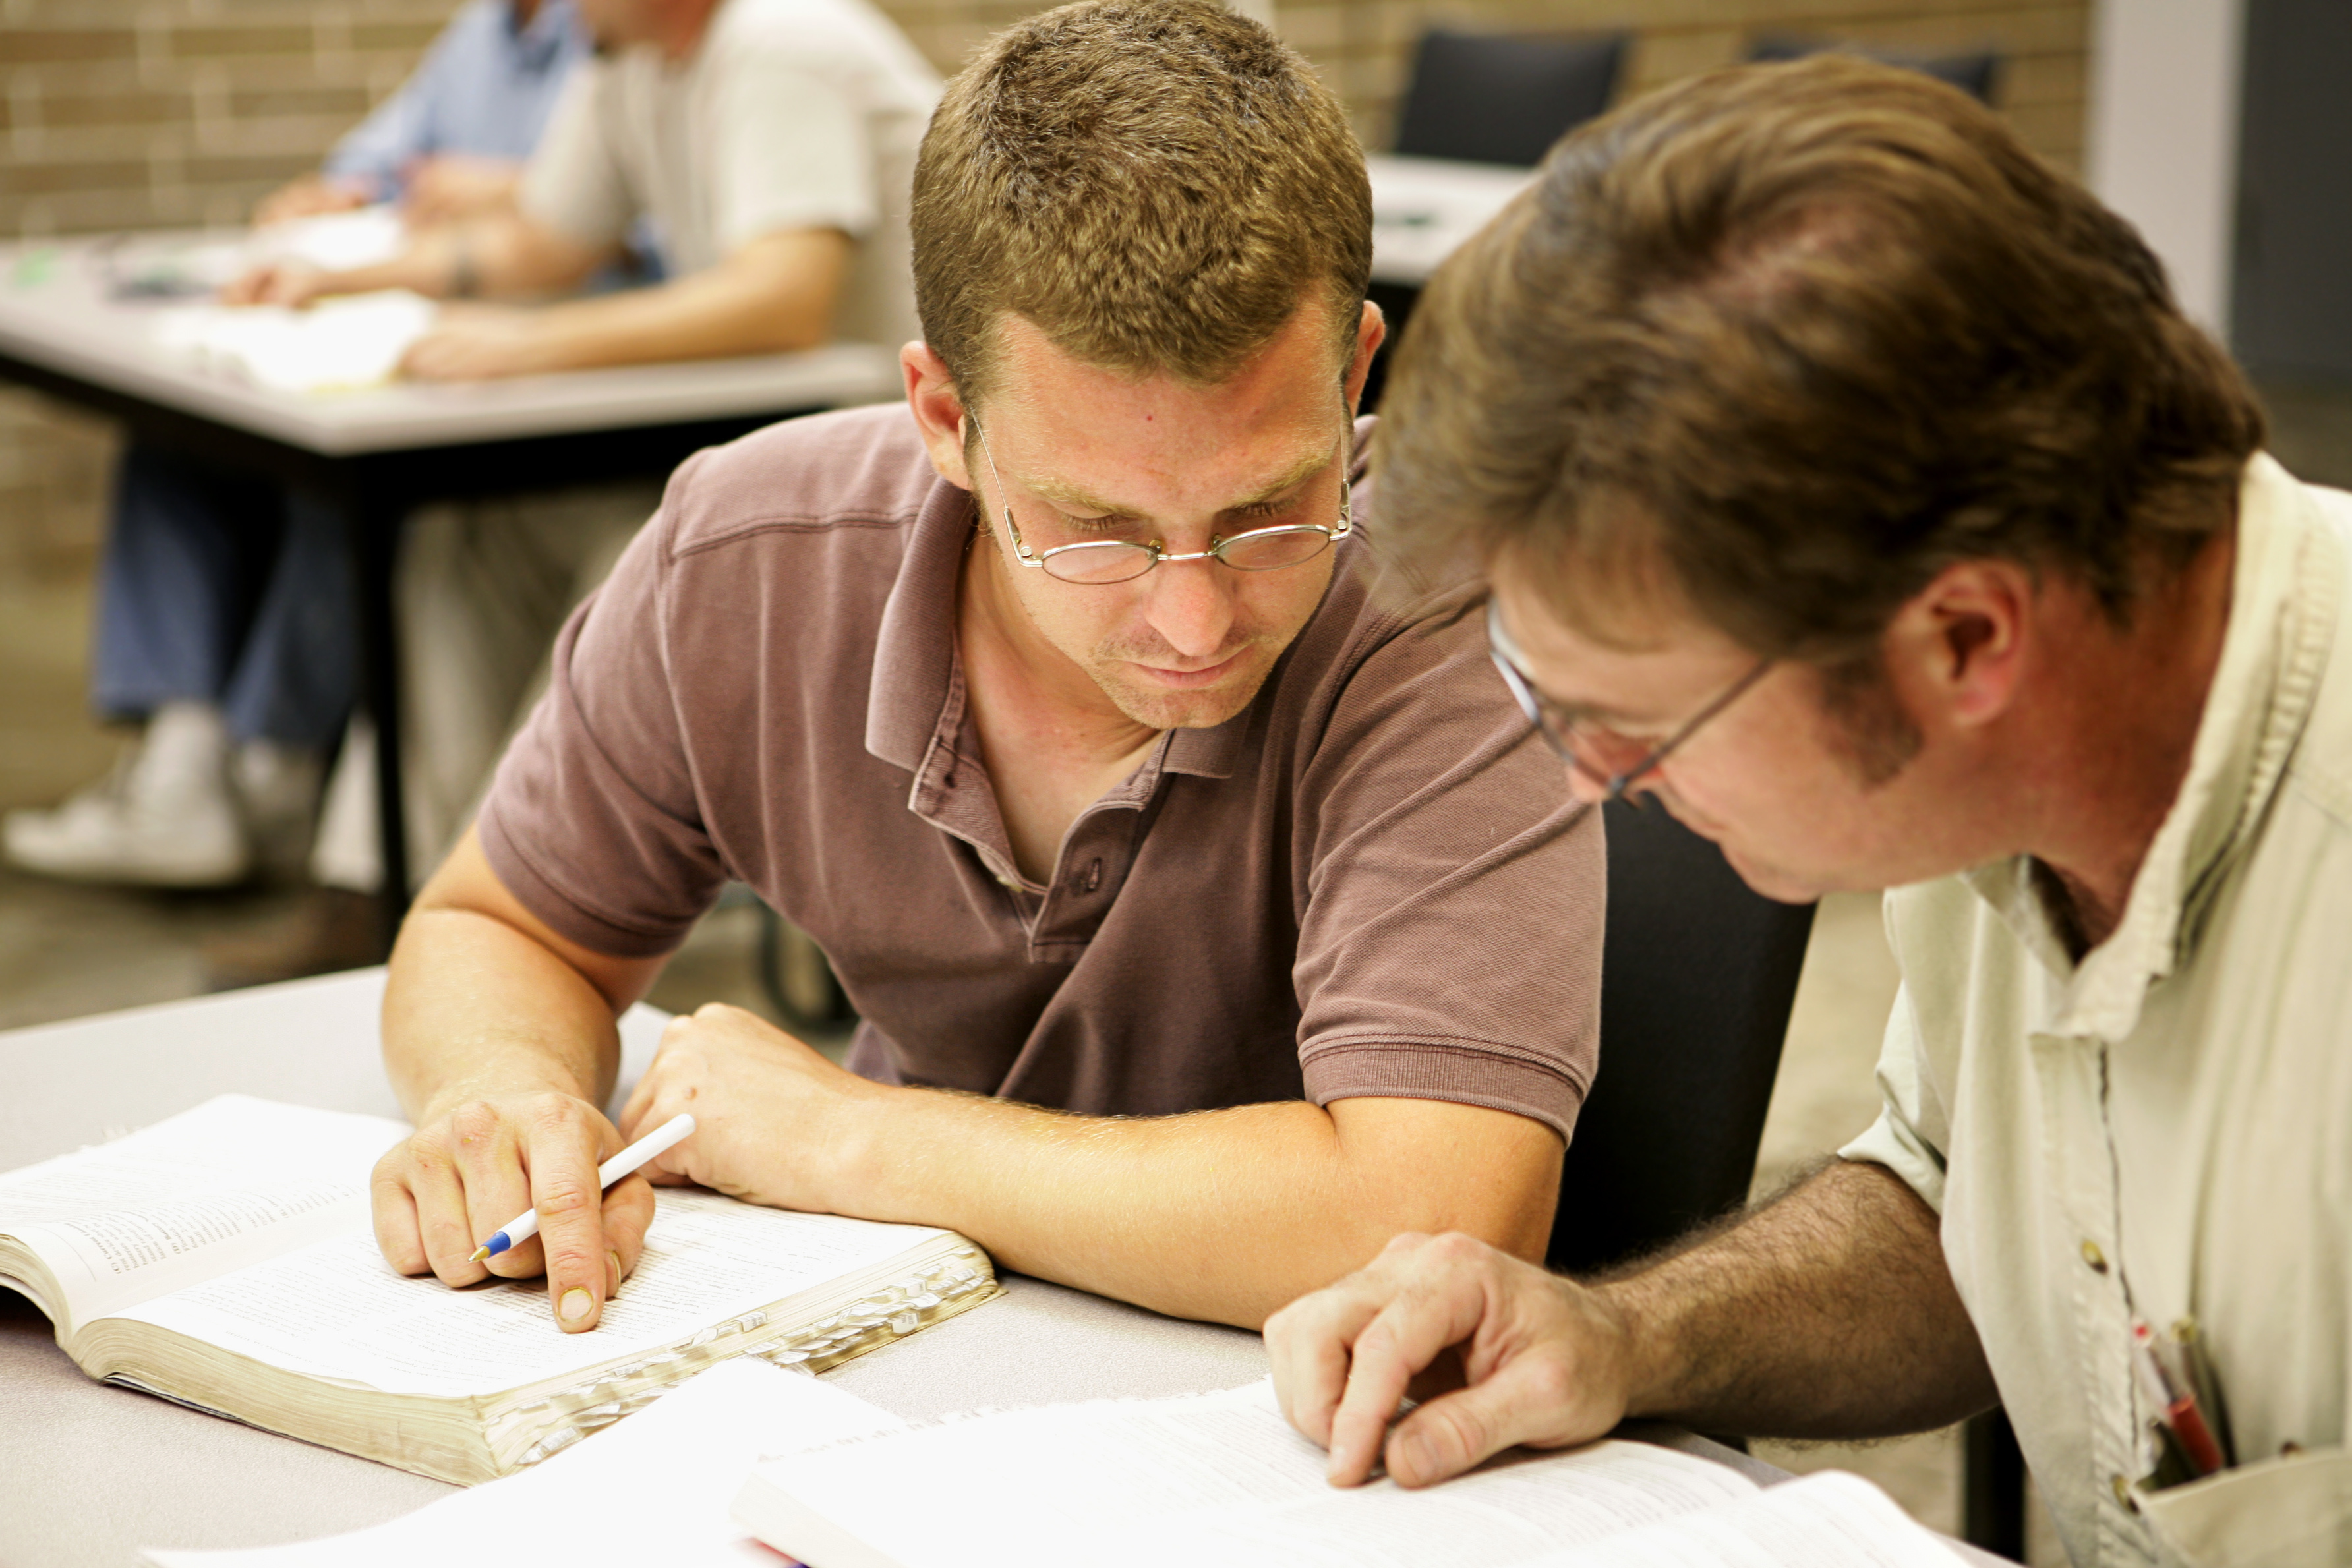 Two adult education students studying together in class.